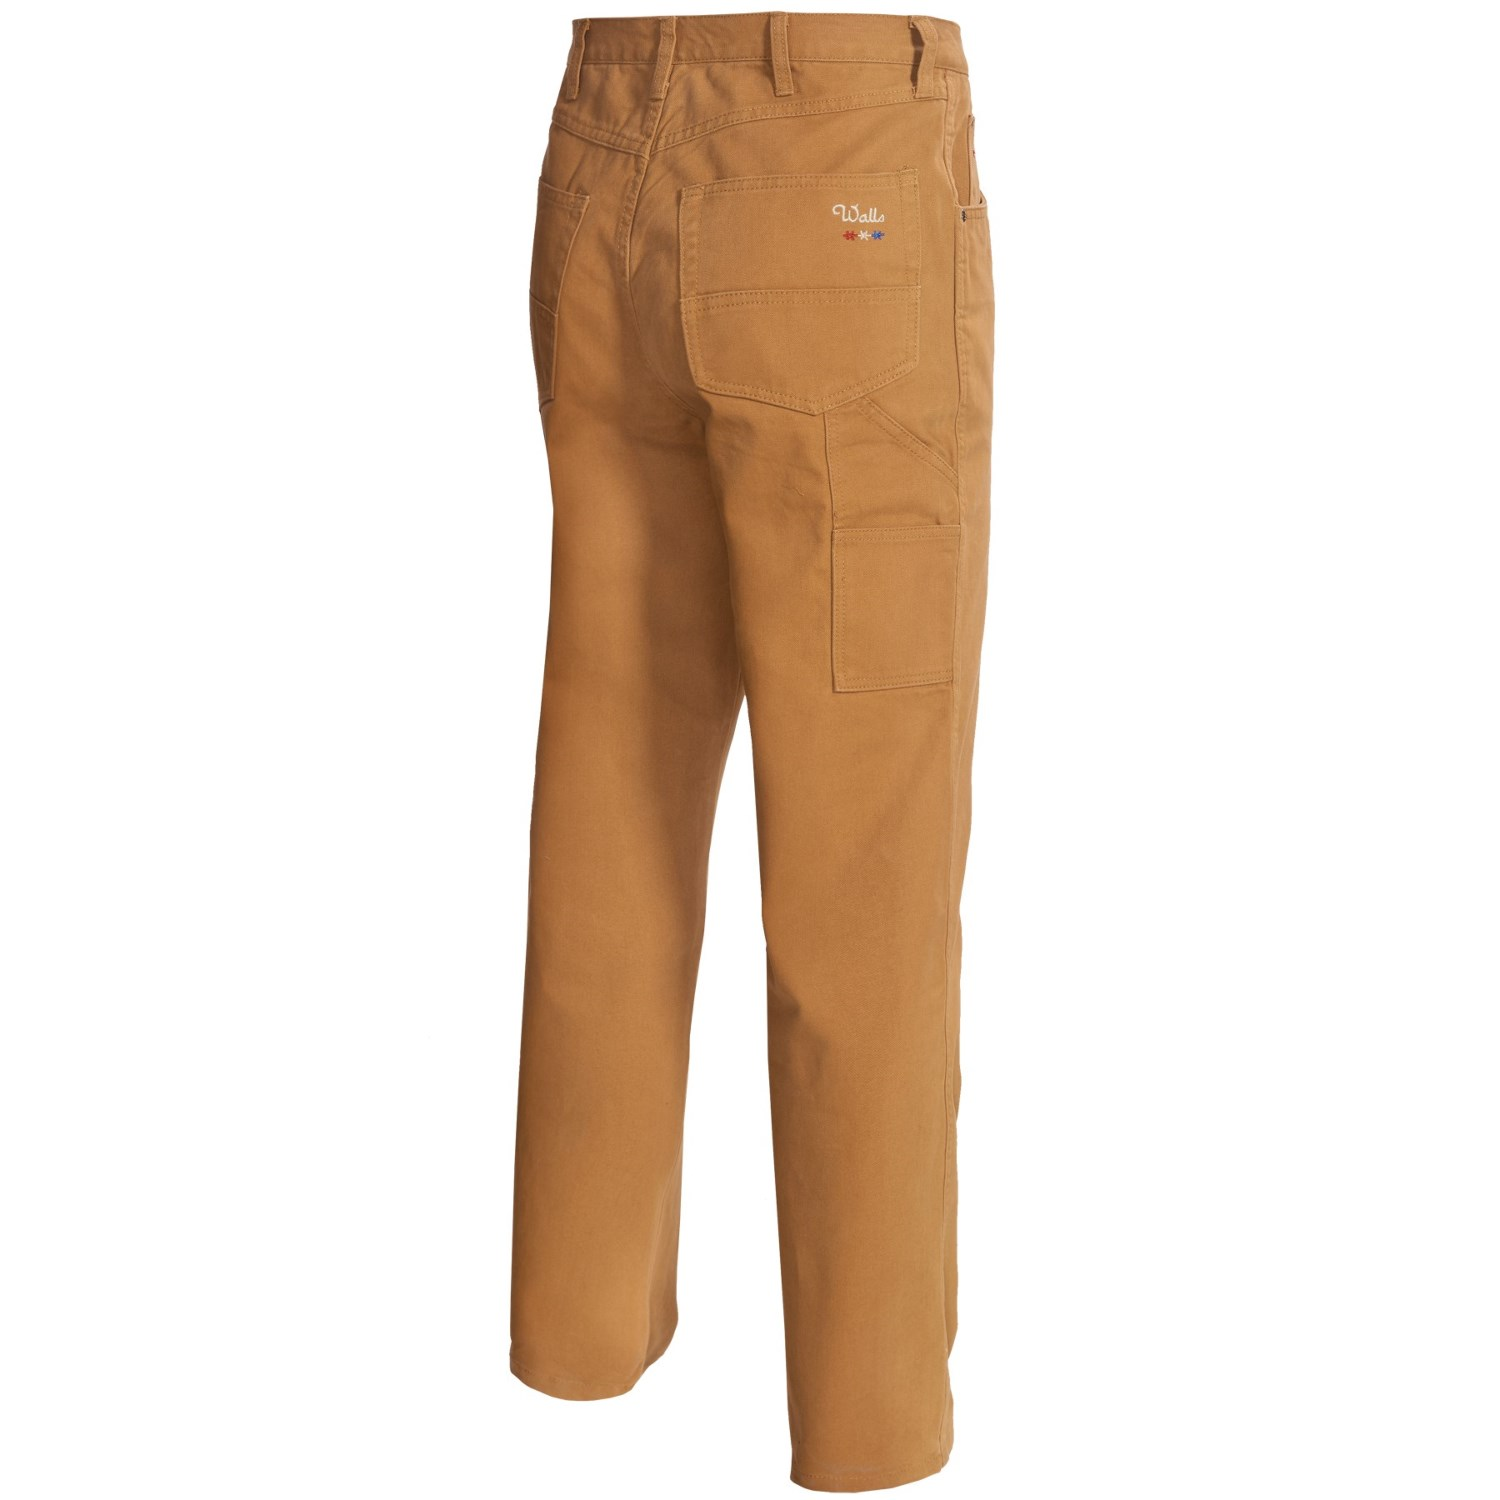 carpenter buddhist single men Shop for carpenter jeans for men online at target free shipping on purchases over $35 and save 5% every day with your target redcard.